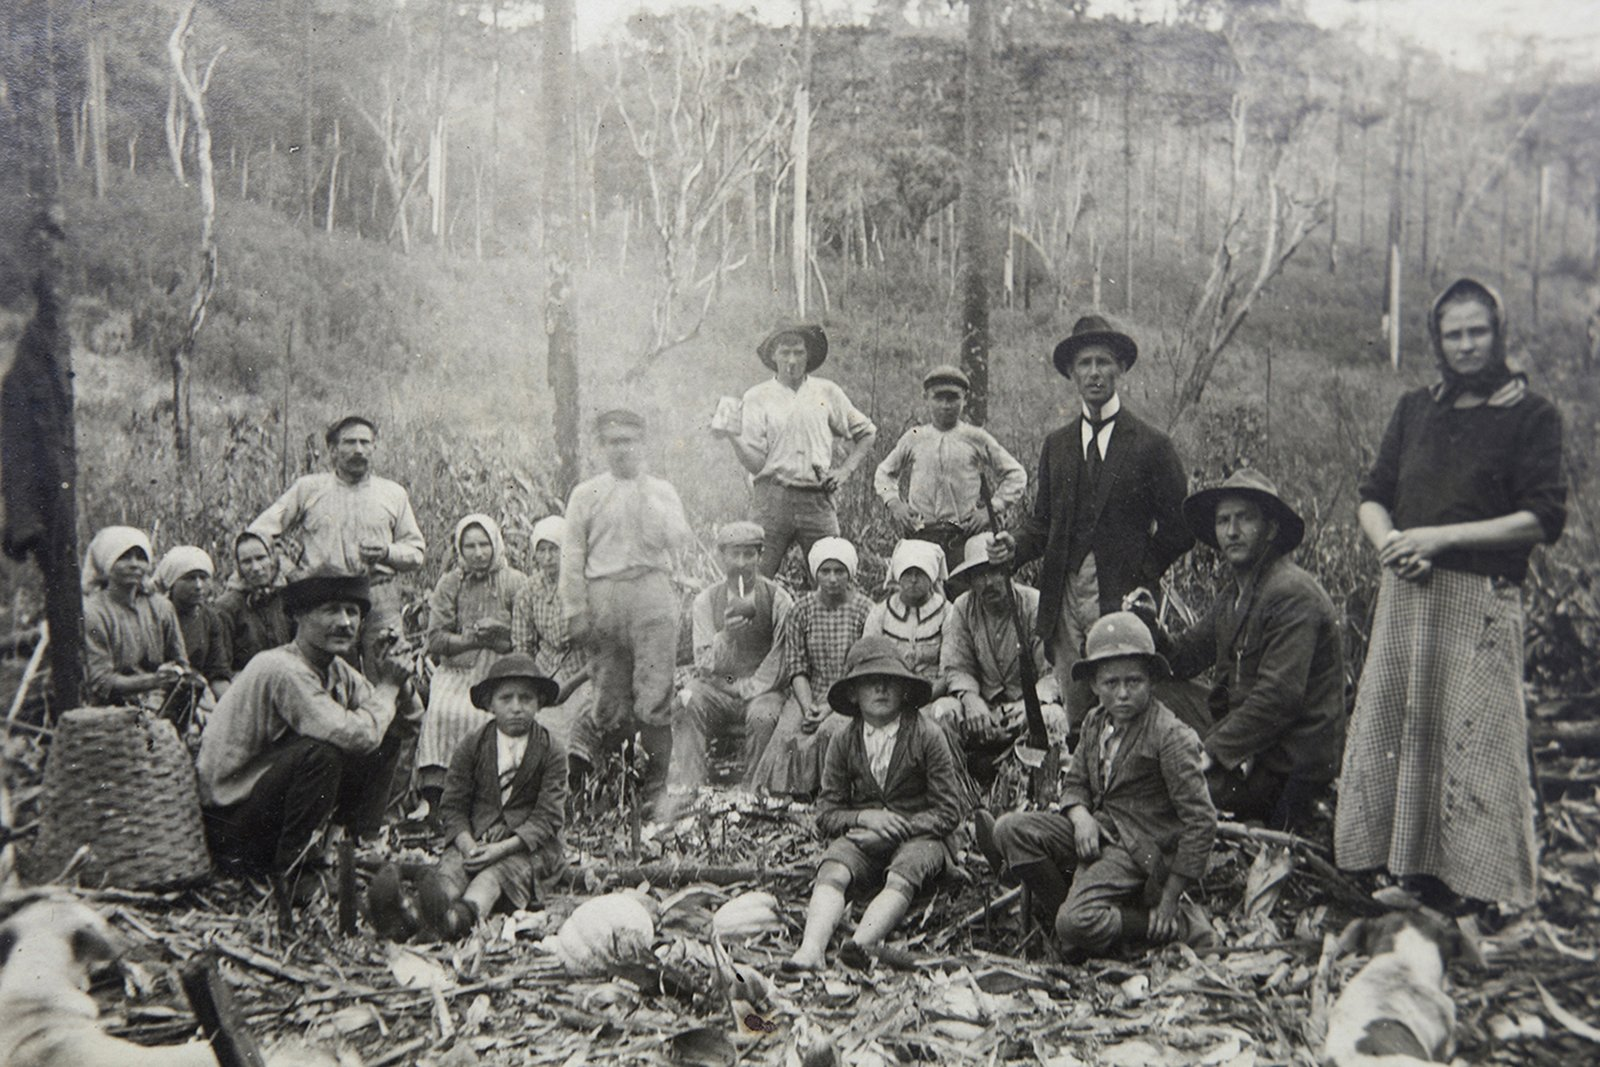 Archival photograph from the family archive of Guizelia De Almeida Wronski, Mallet, Brazil. Polish settlers probably cutting down the forest to build a colony. End of XIX century, exact date unknown.